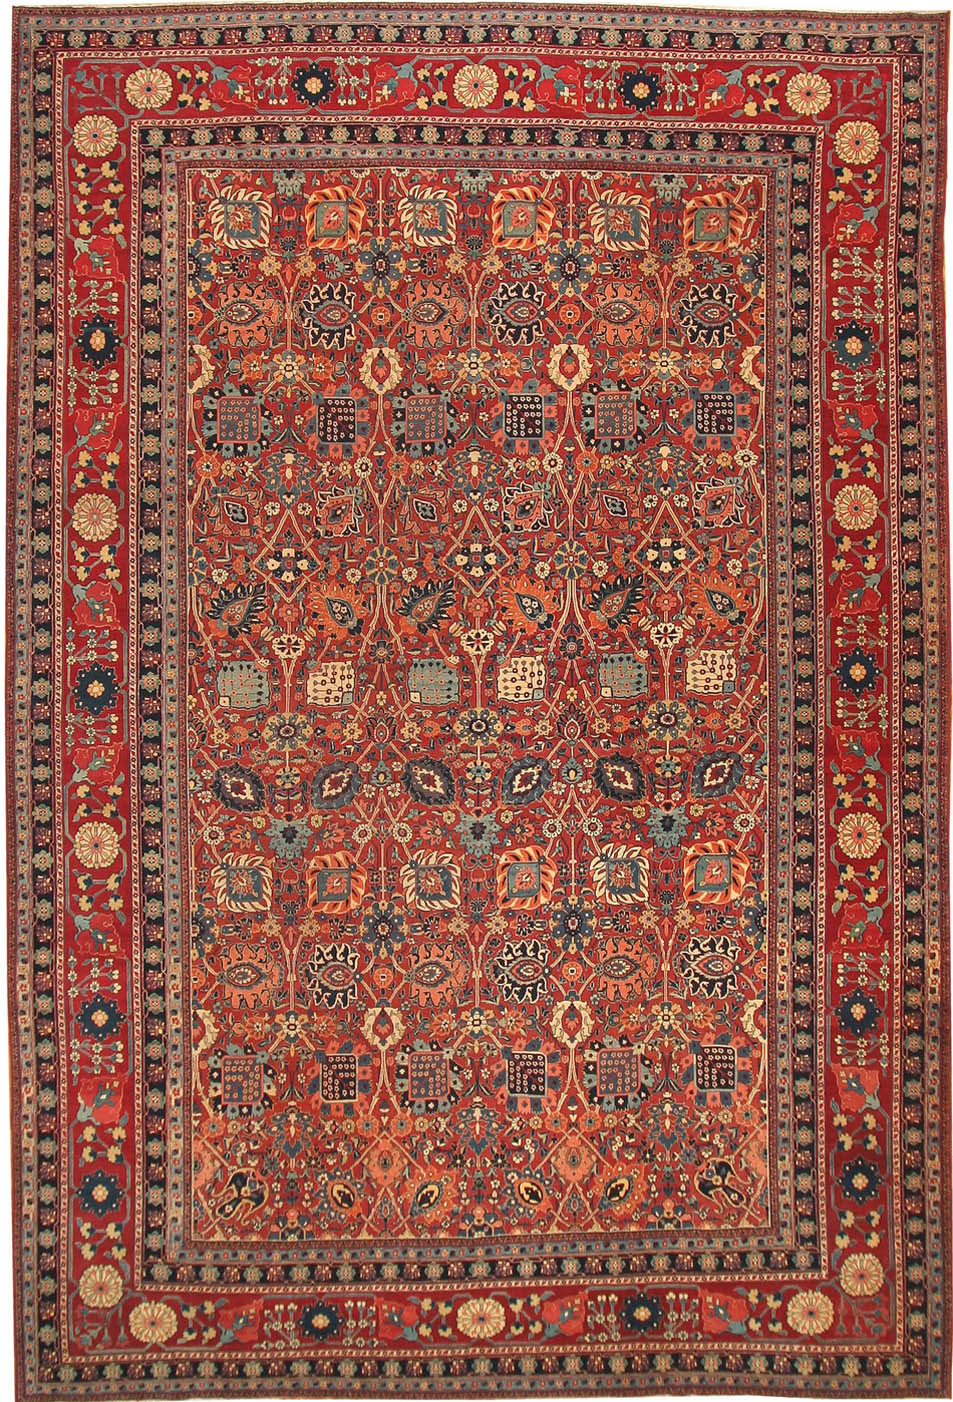 File Antique Rug 42432 Jpg Wikimedia Commons